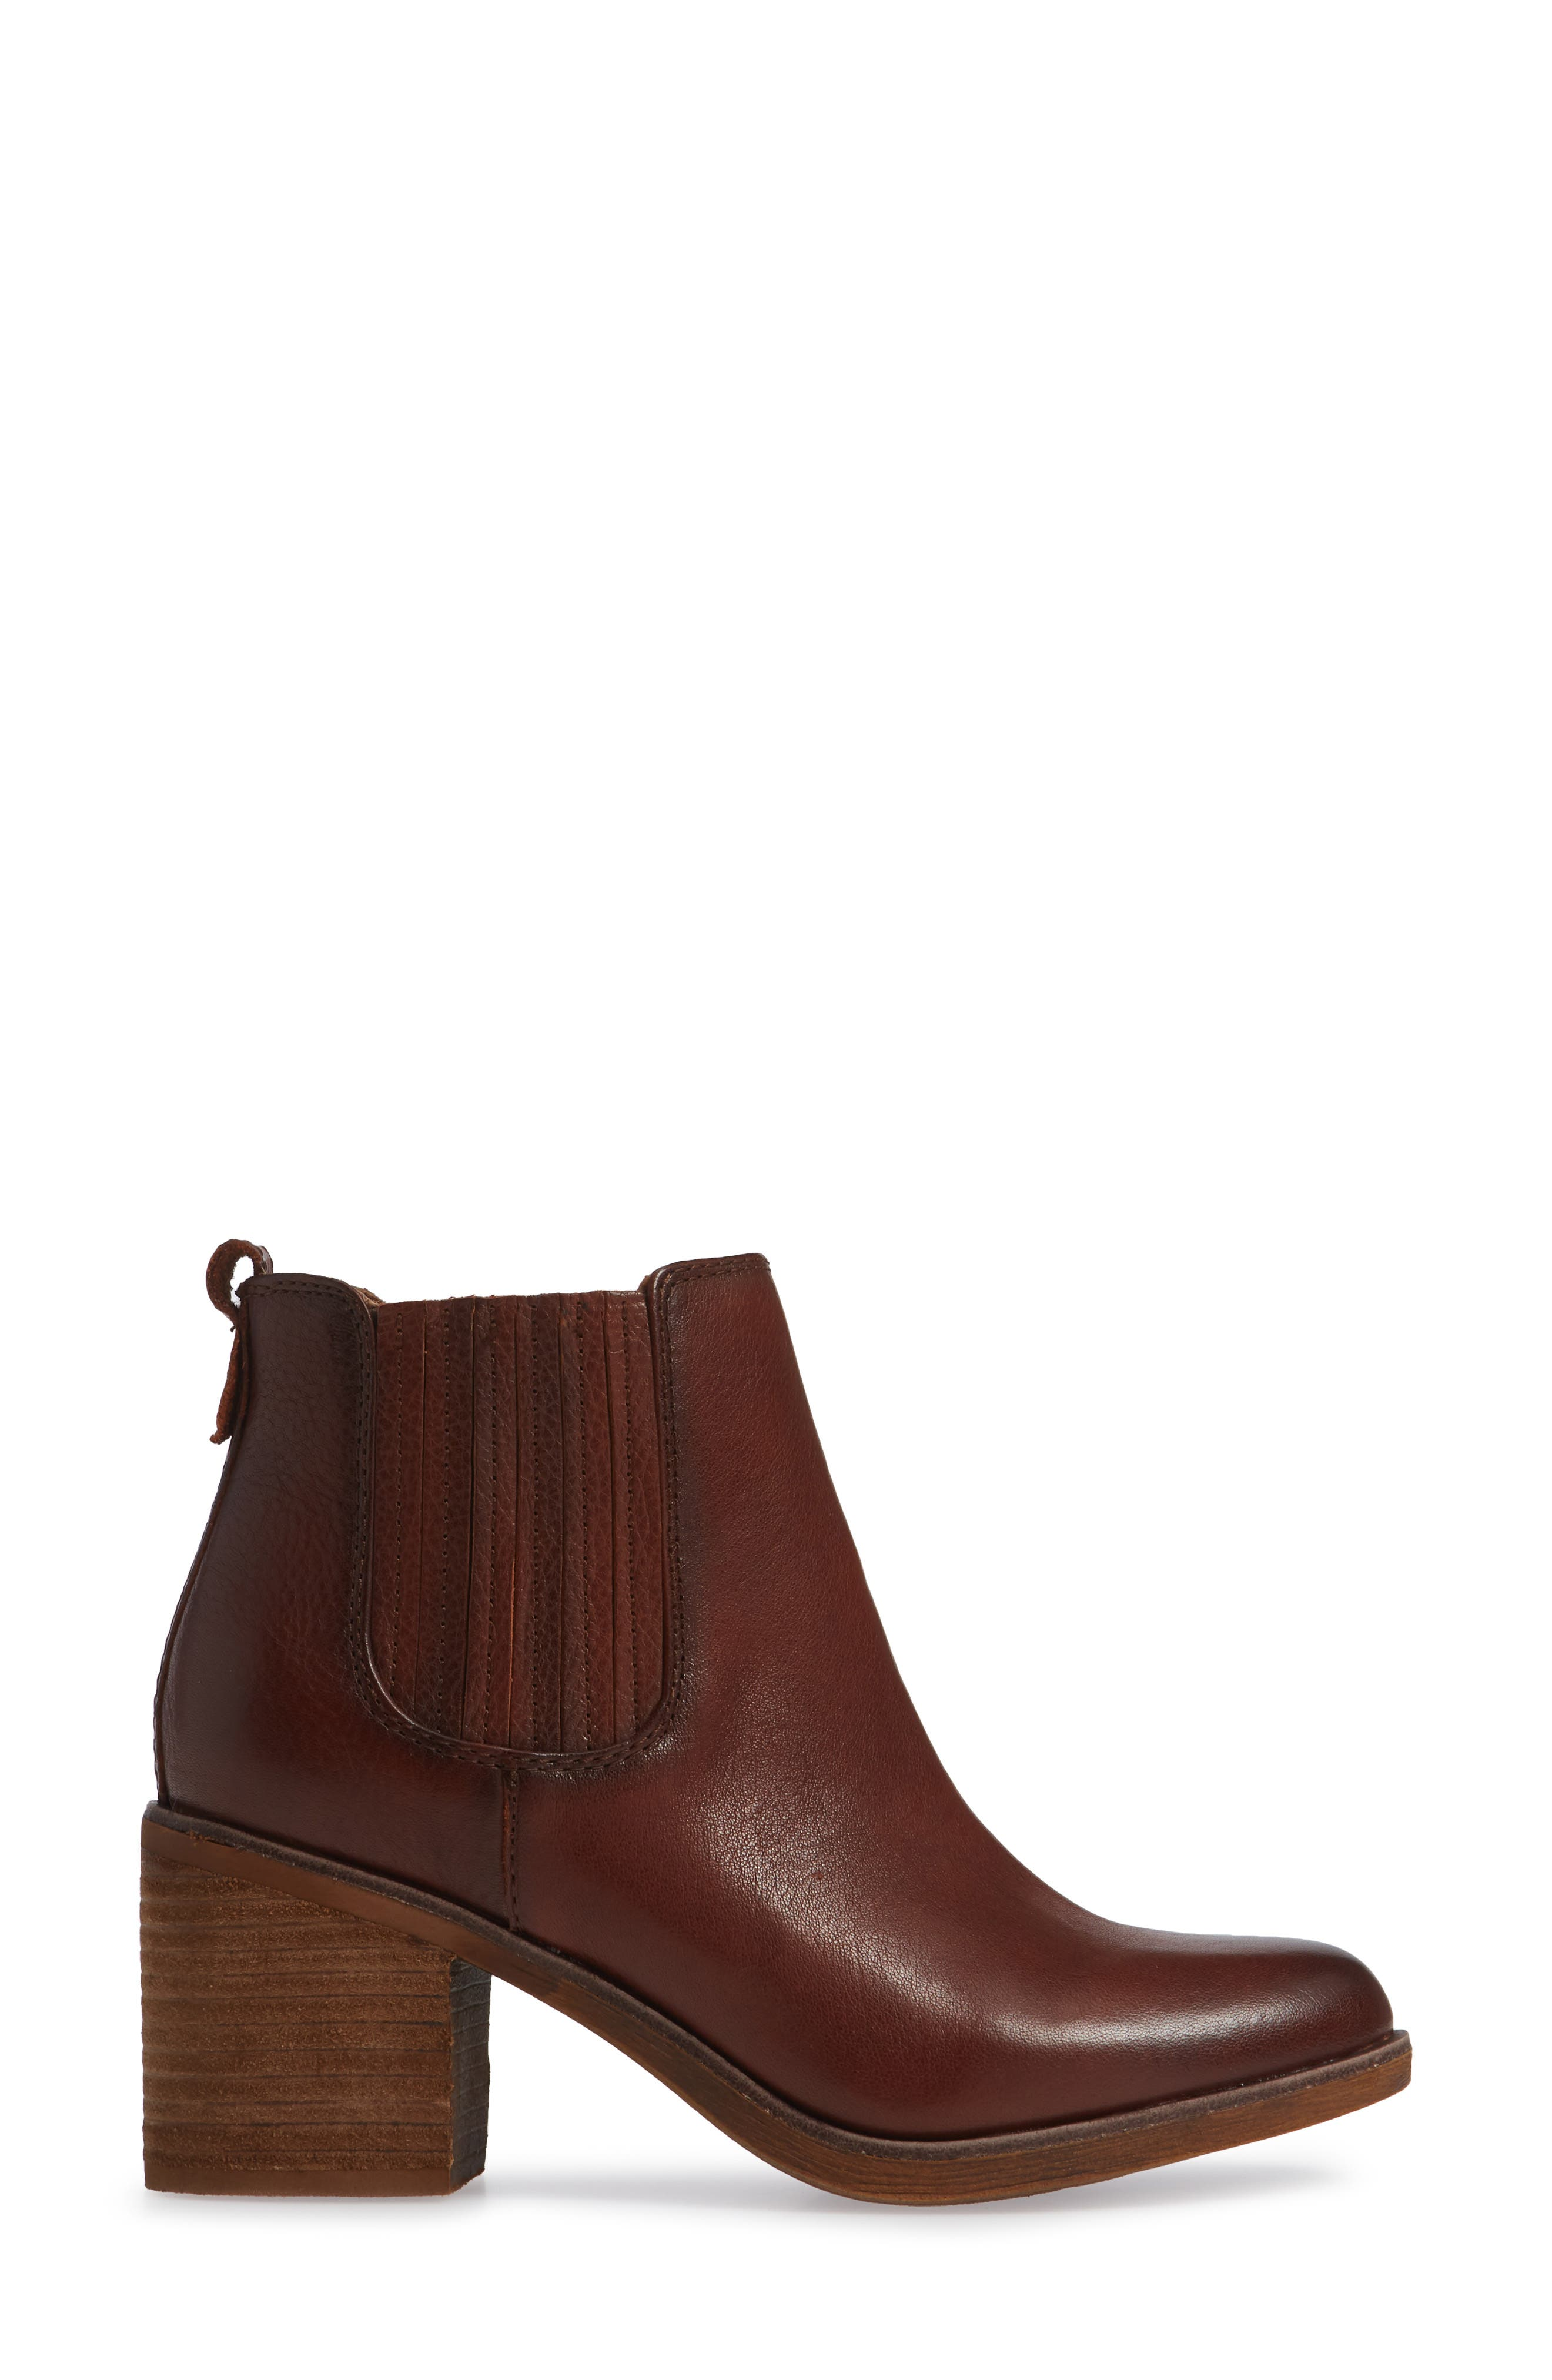 Sadova Chelsea Bootie,                             Alternate thumbnail 3, color,                             WHISKEY LEATHER